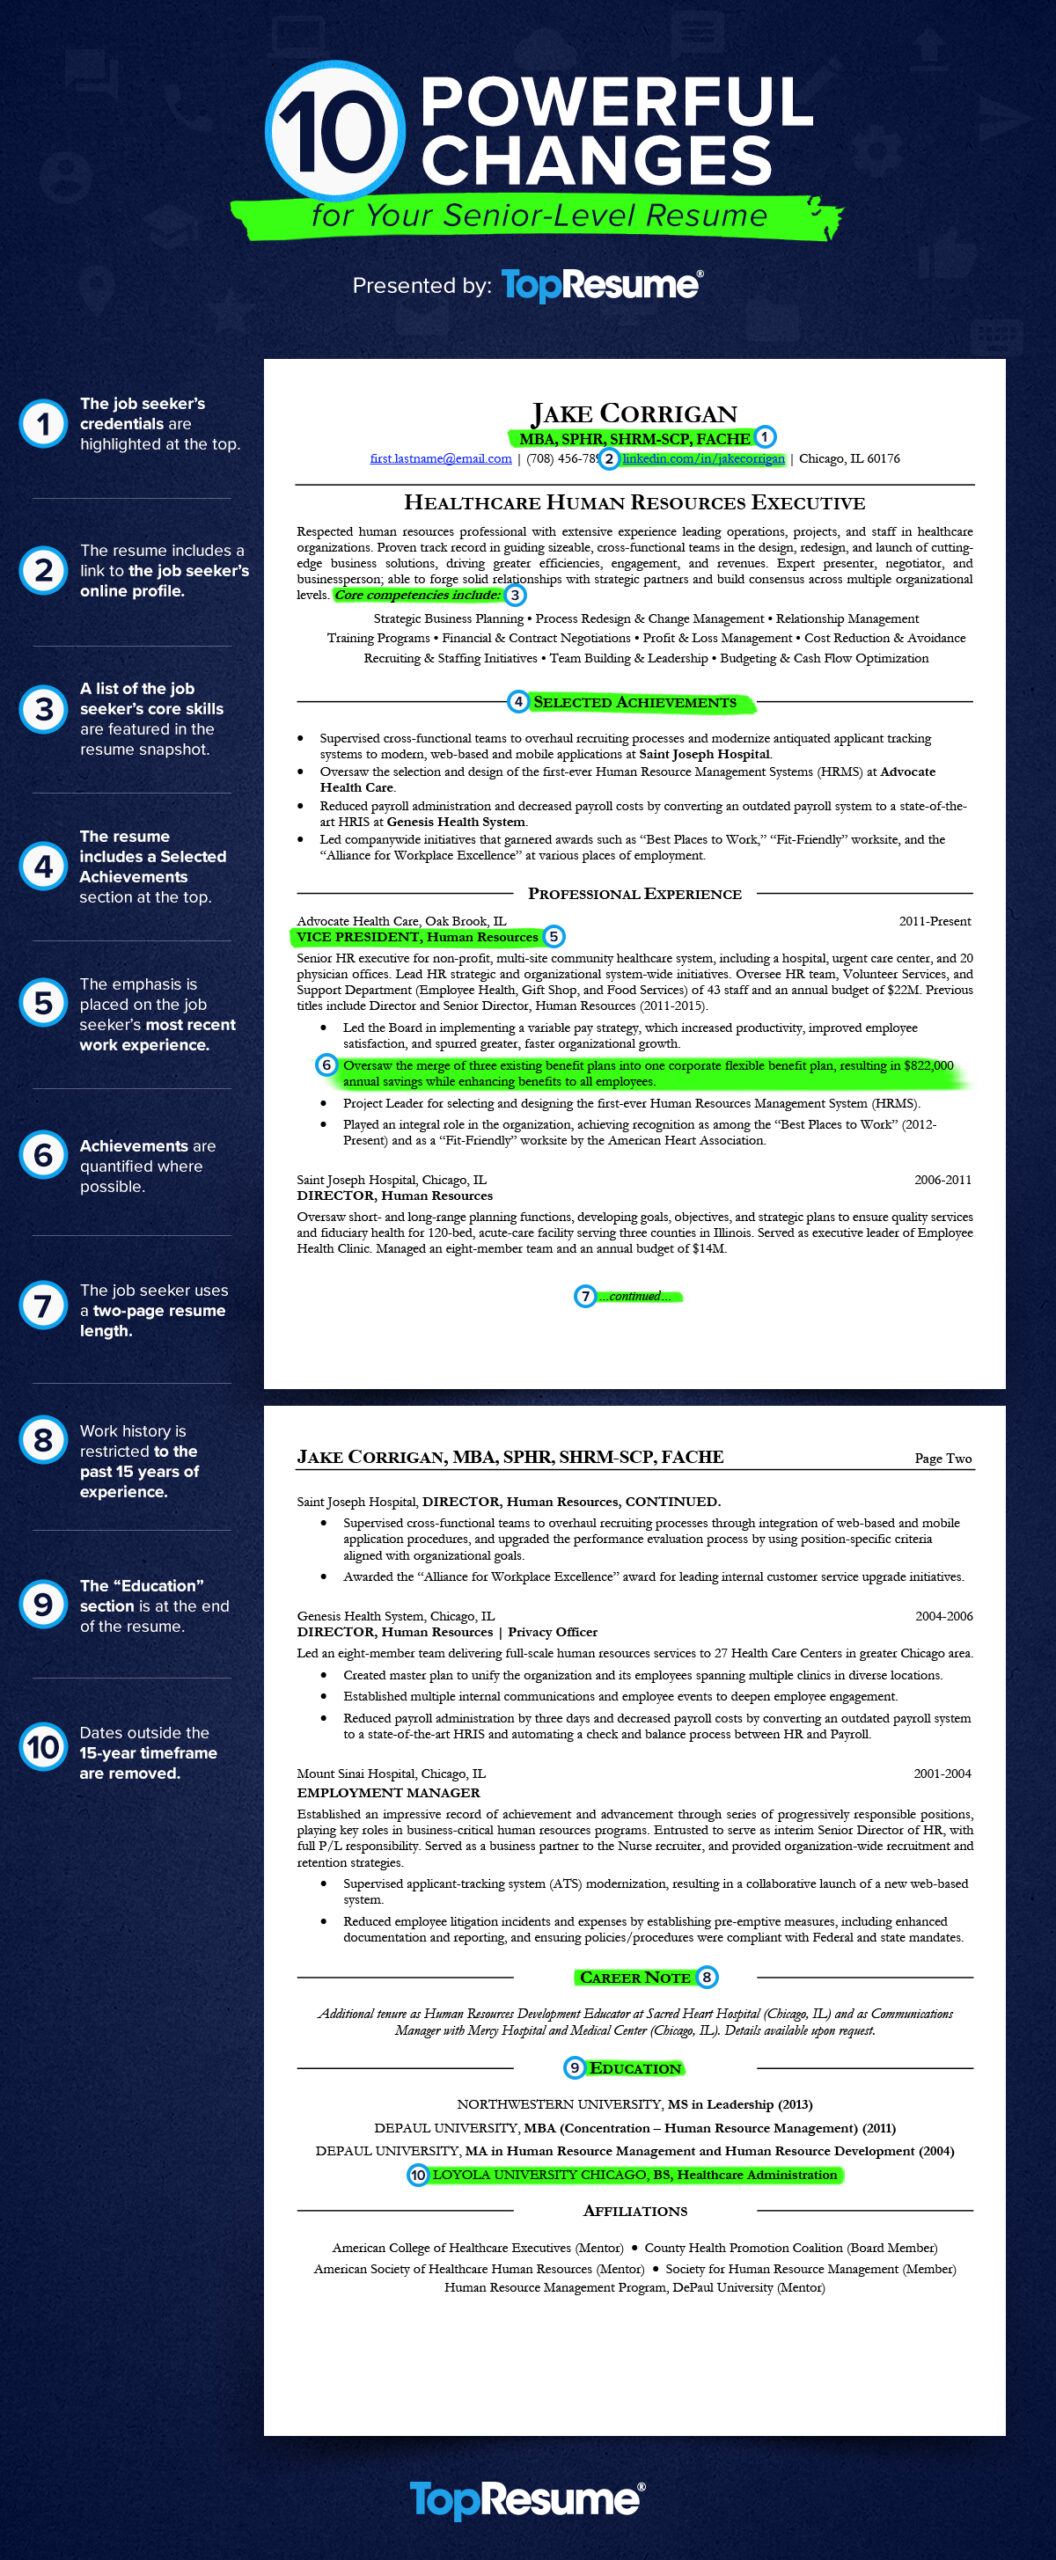 powerful changes for your executive level resume topresume job application seeker sample Resume Job Application Job Seeker Resume Sample